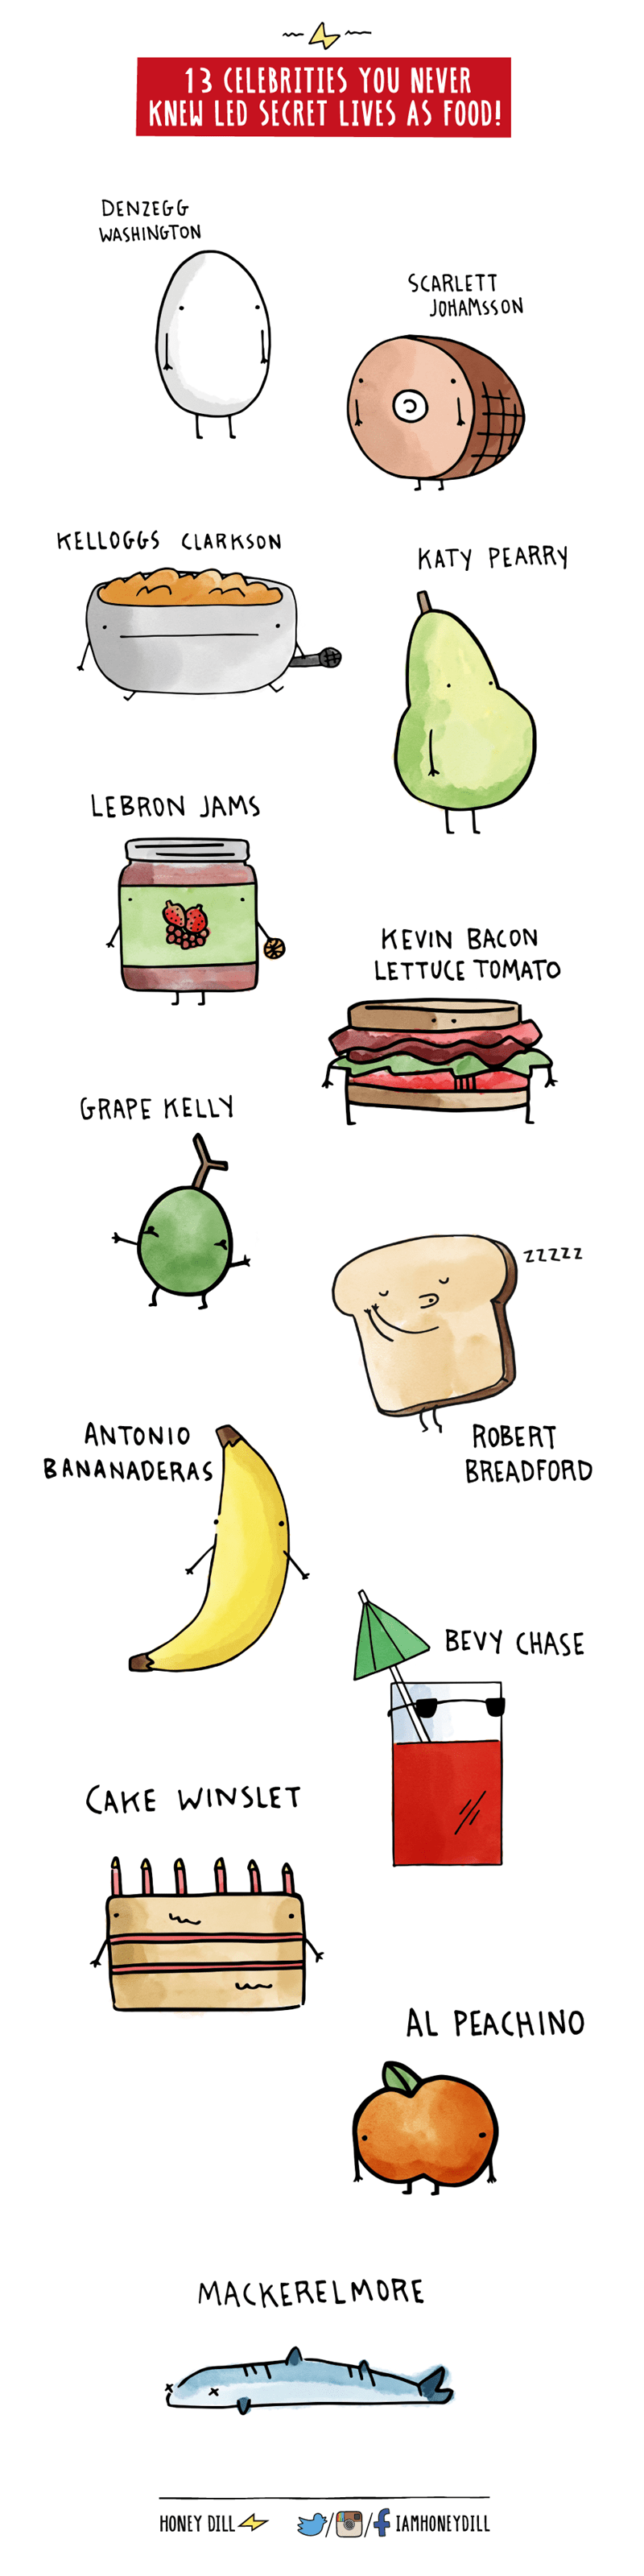 web-comics-celebrities-names-food-secret-lives-funny